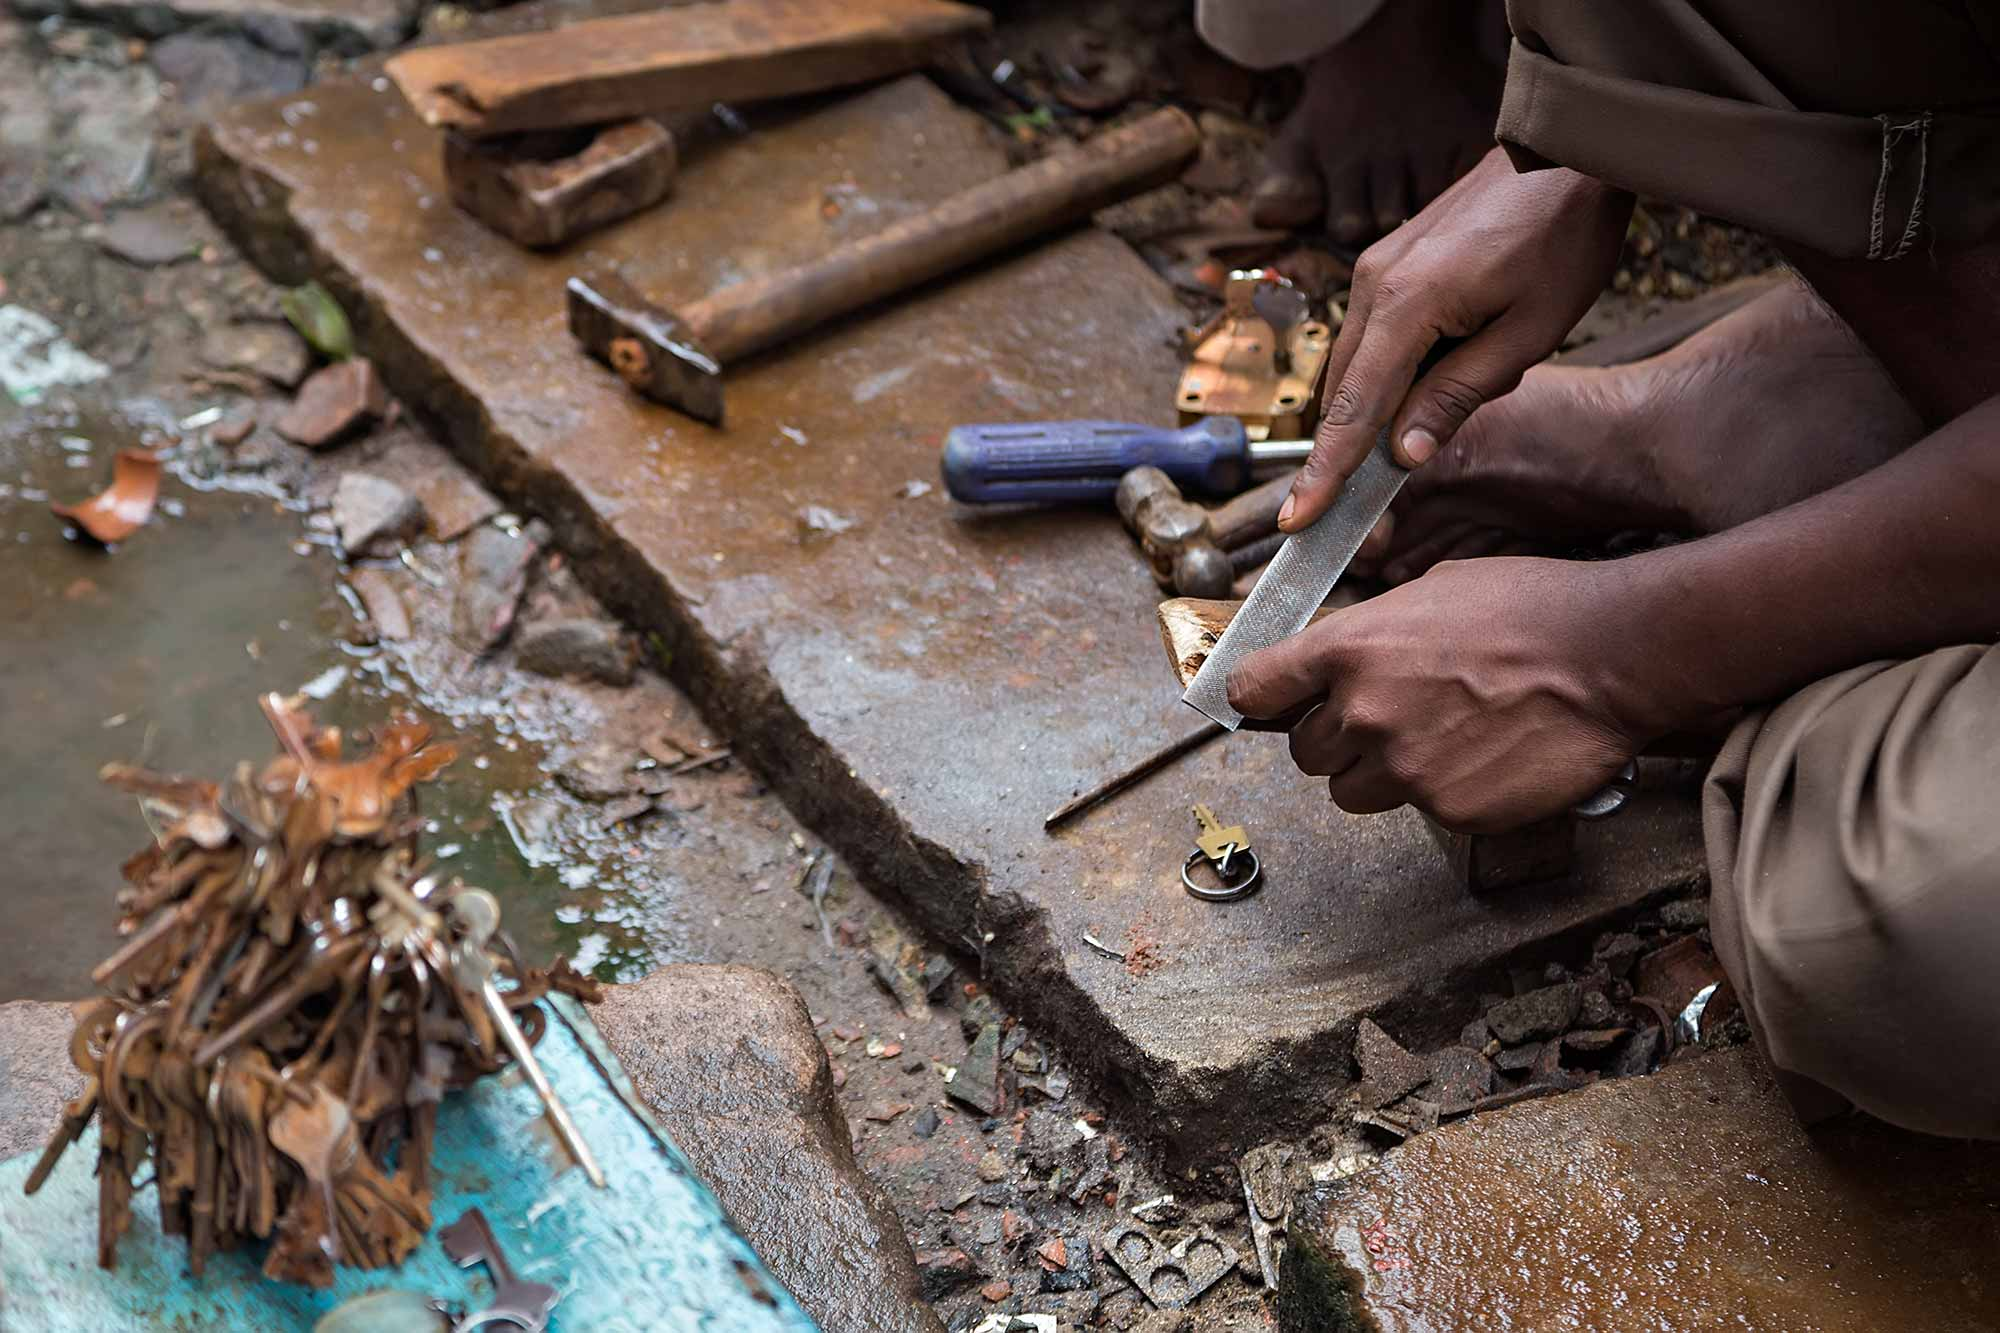 Hands of a key maker in the streets of Kolkata, India. © Ulli Maier & Nisa Maier